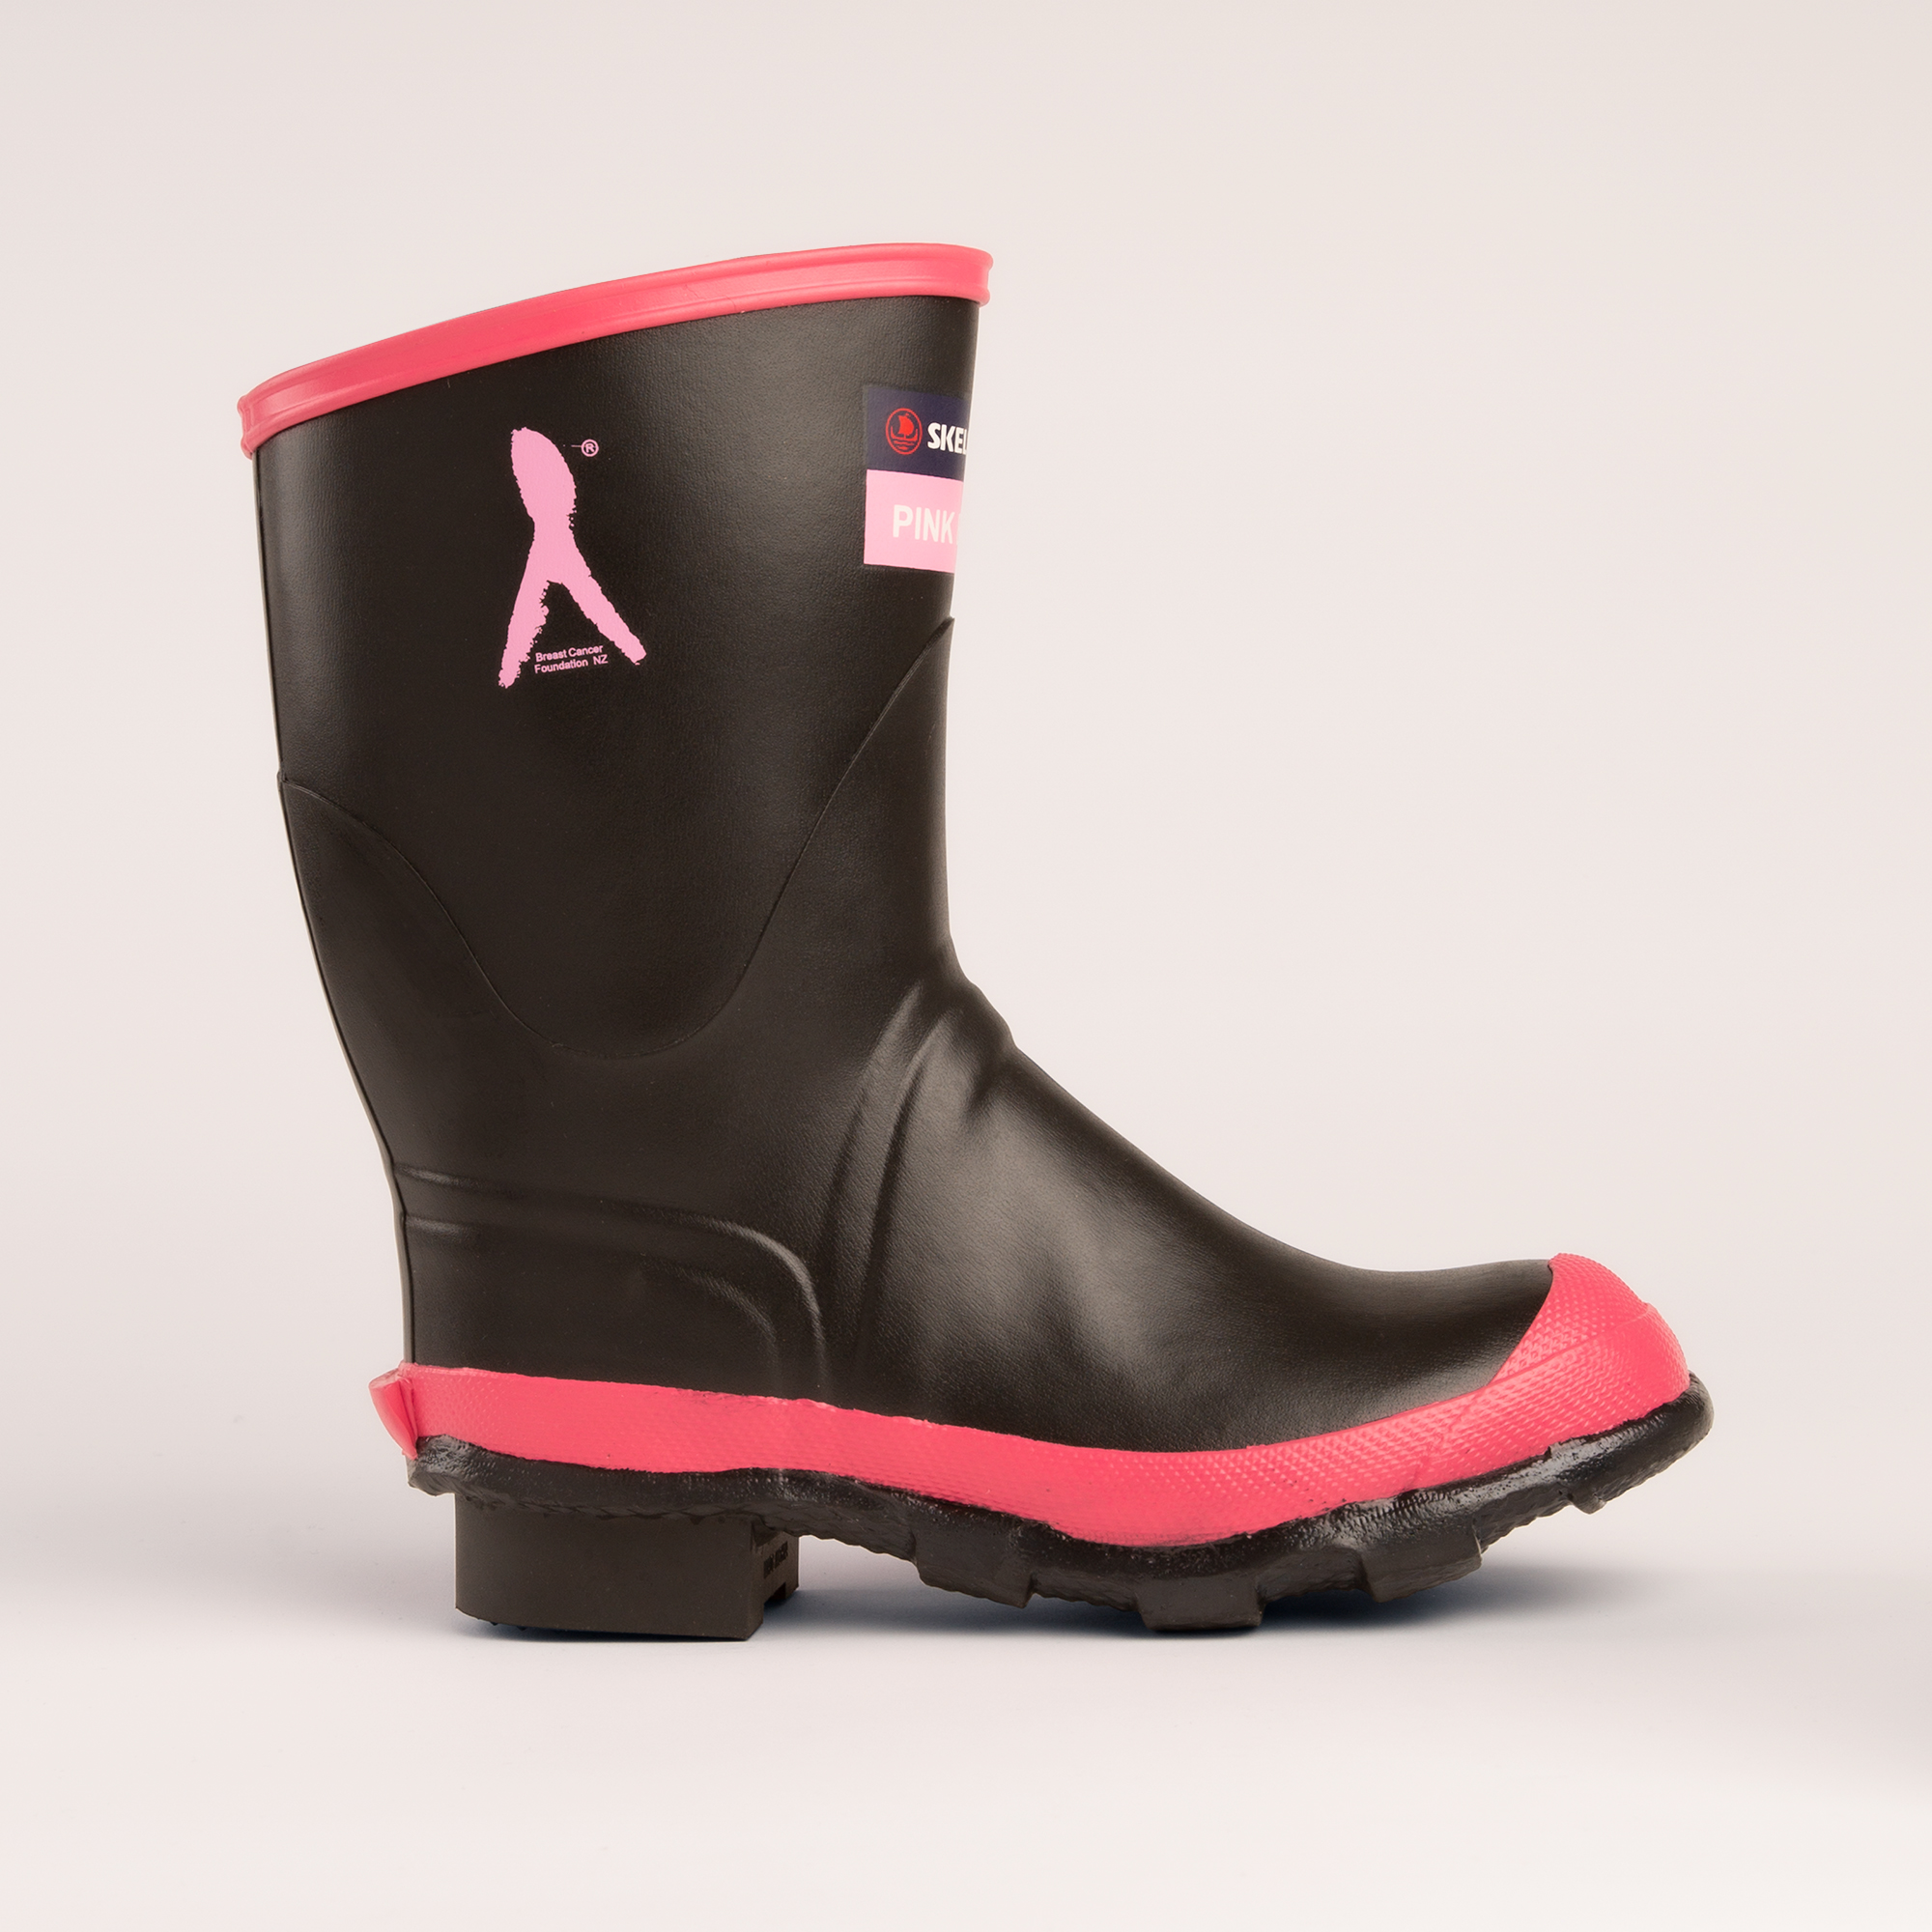 Image of Skellerup Pink Band Women/Youth